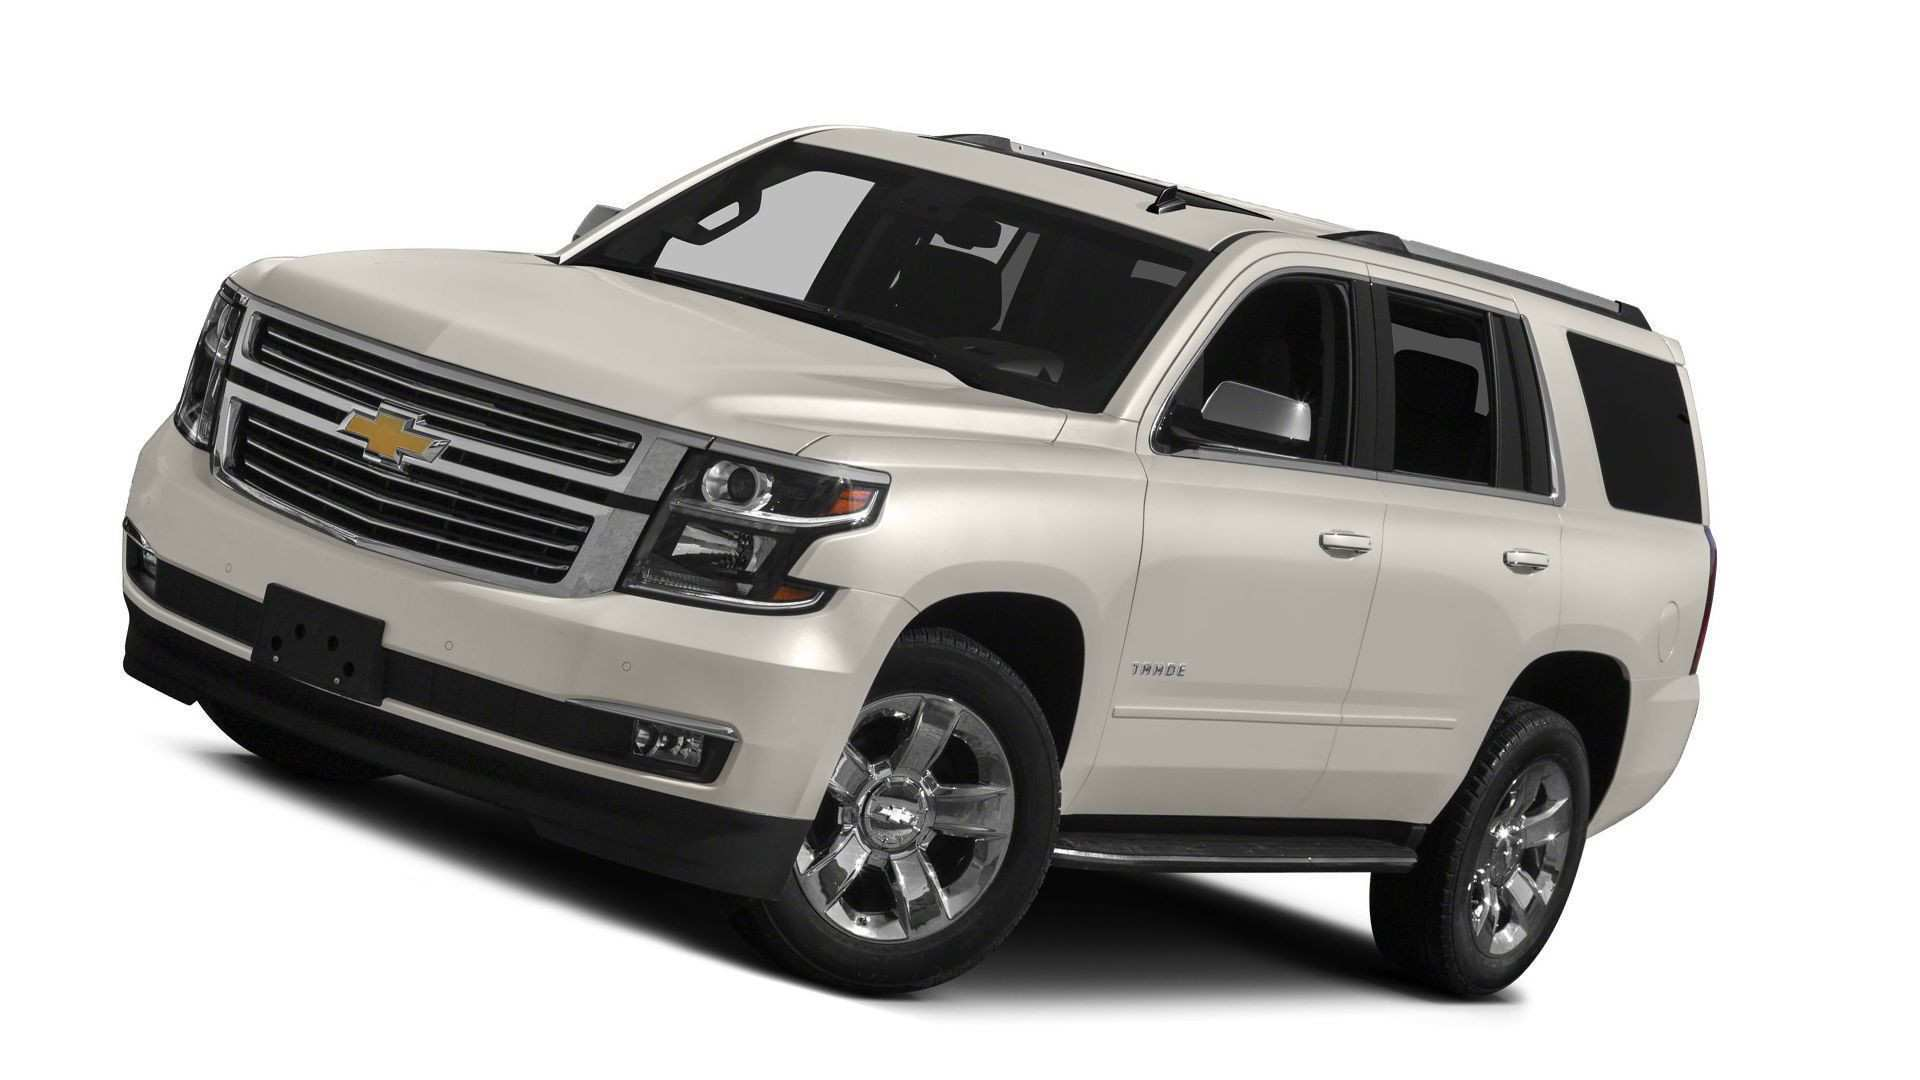 98 Concept of 2020 Chevy Tahoe Z71 Ss Overview for 2020 Chevy Tahoe Z71 Ss